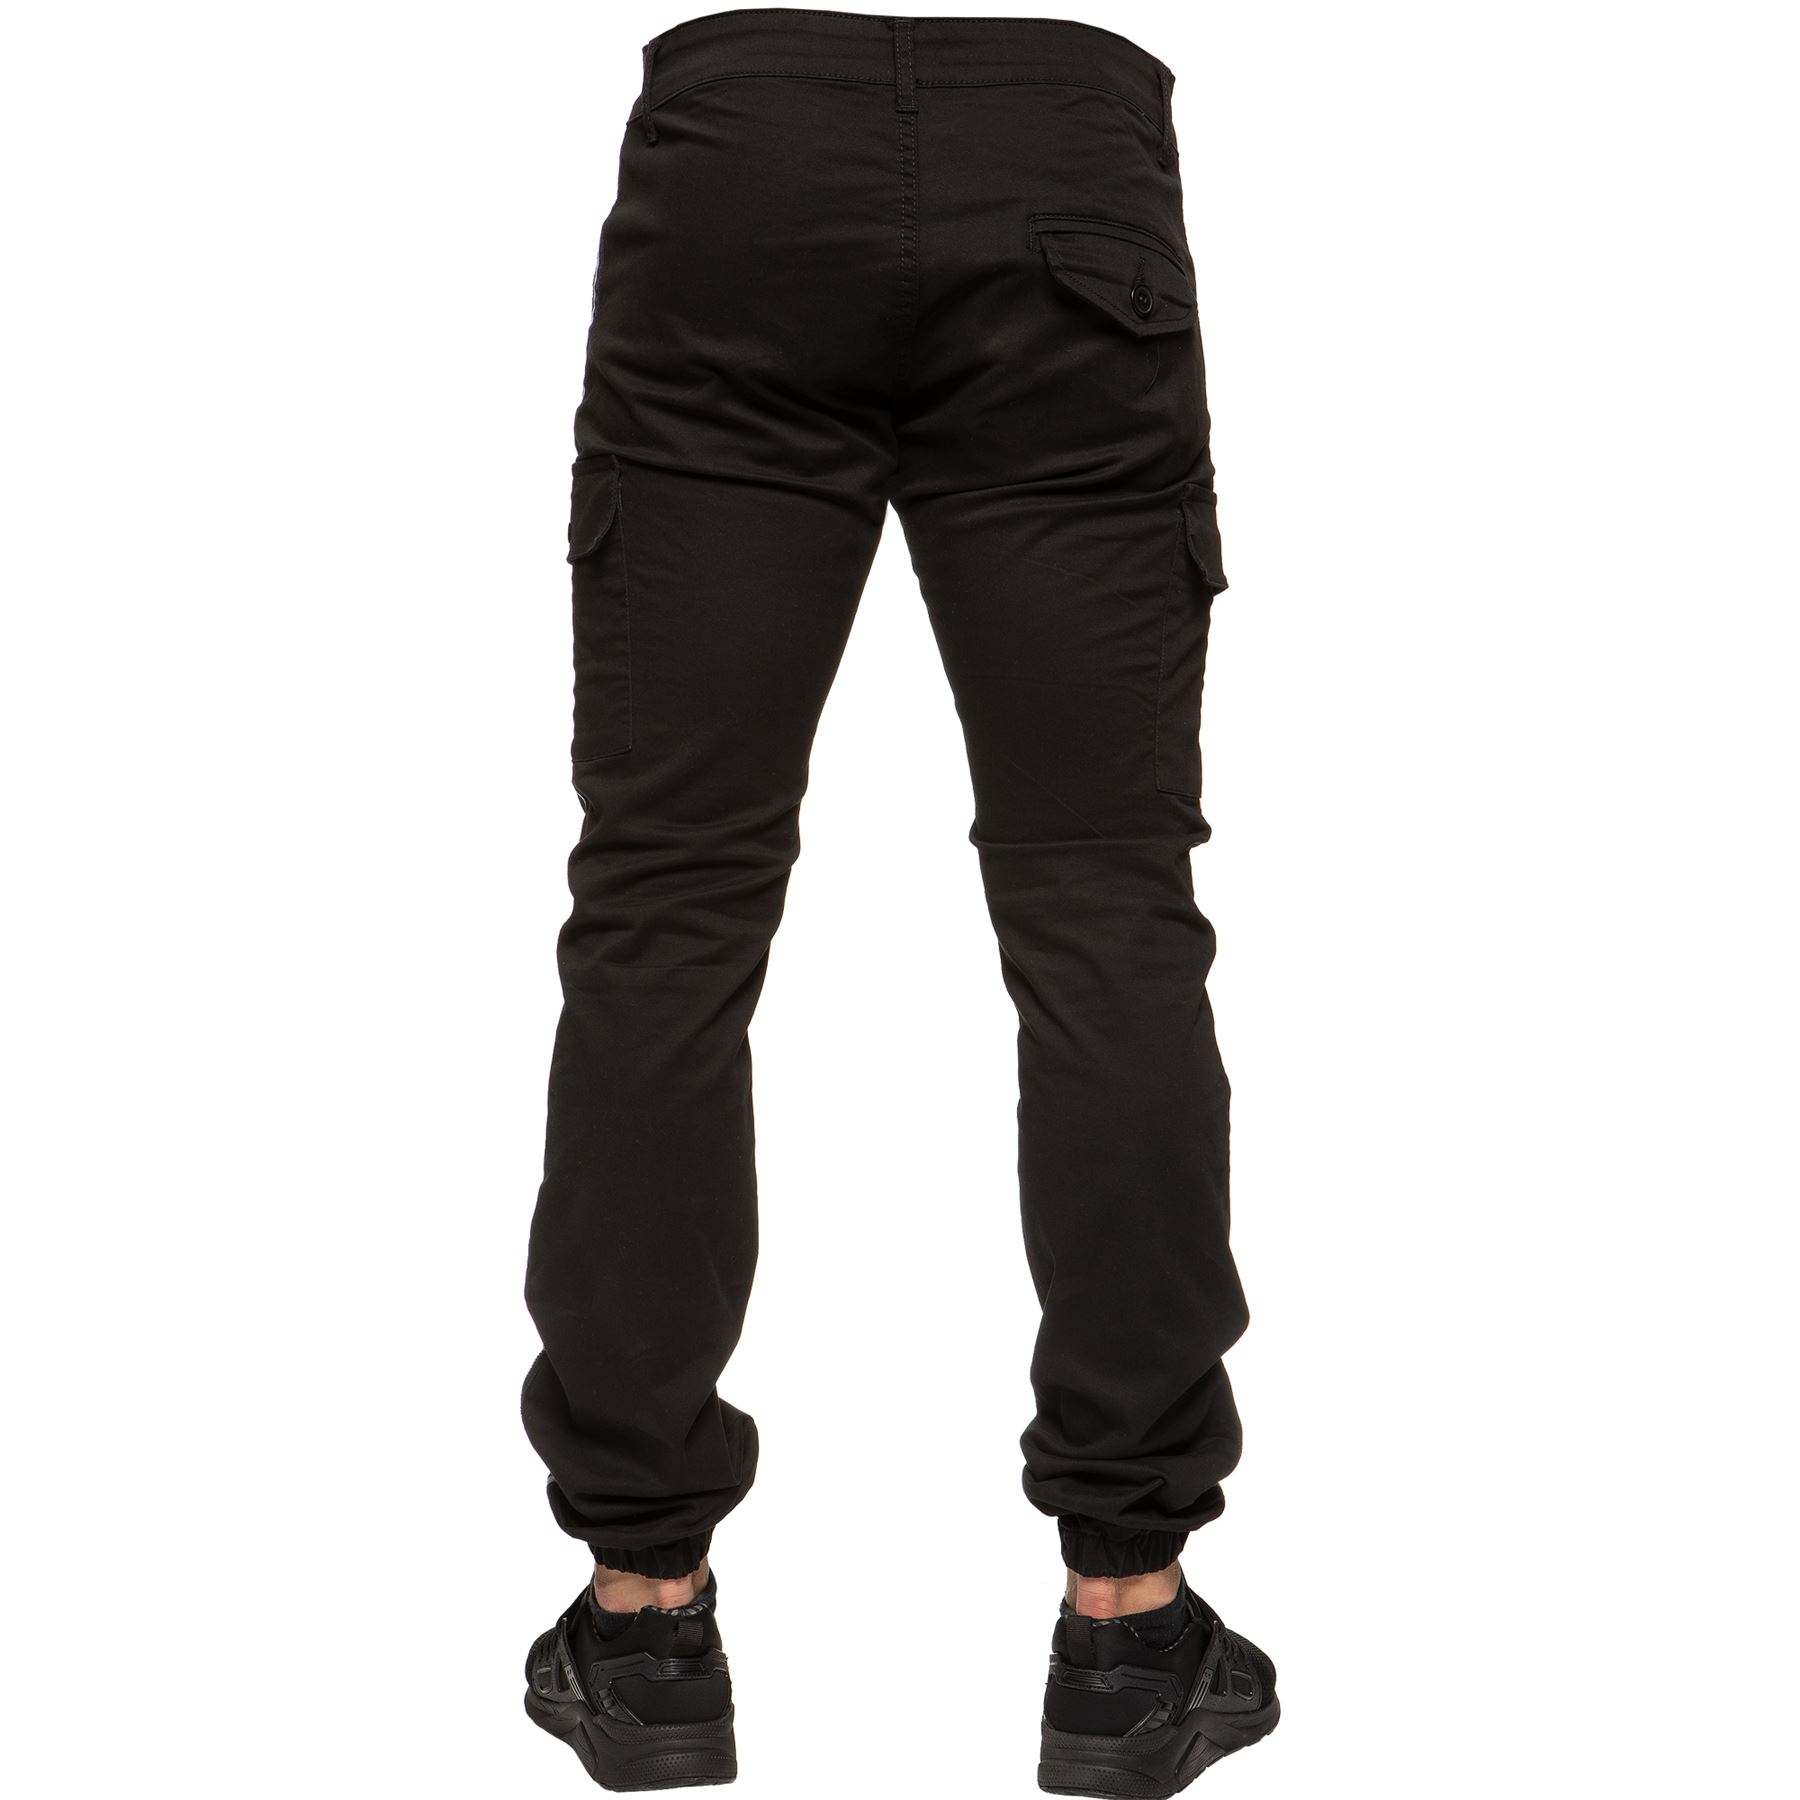 Enzo-Jeans-Mens-Combat-Trousers-Cargo-Chinos-Slim-Stretch-Cuffed-Joggers-Pants thumbnail 4